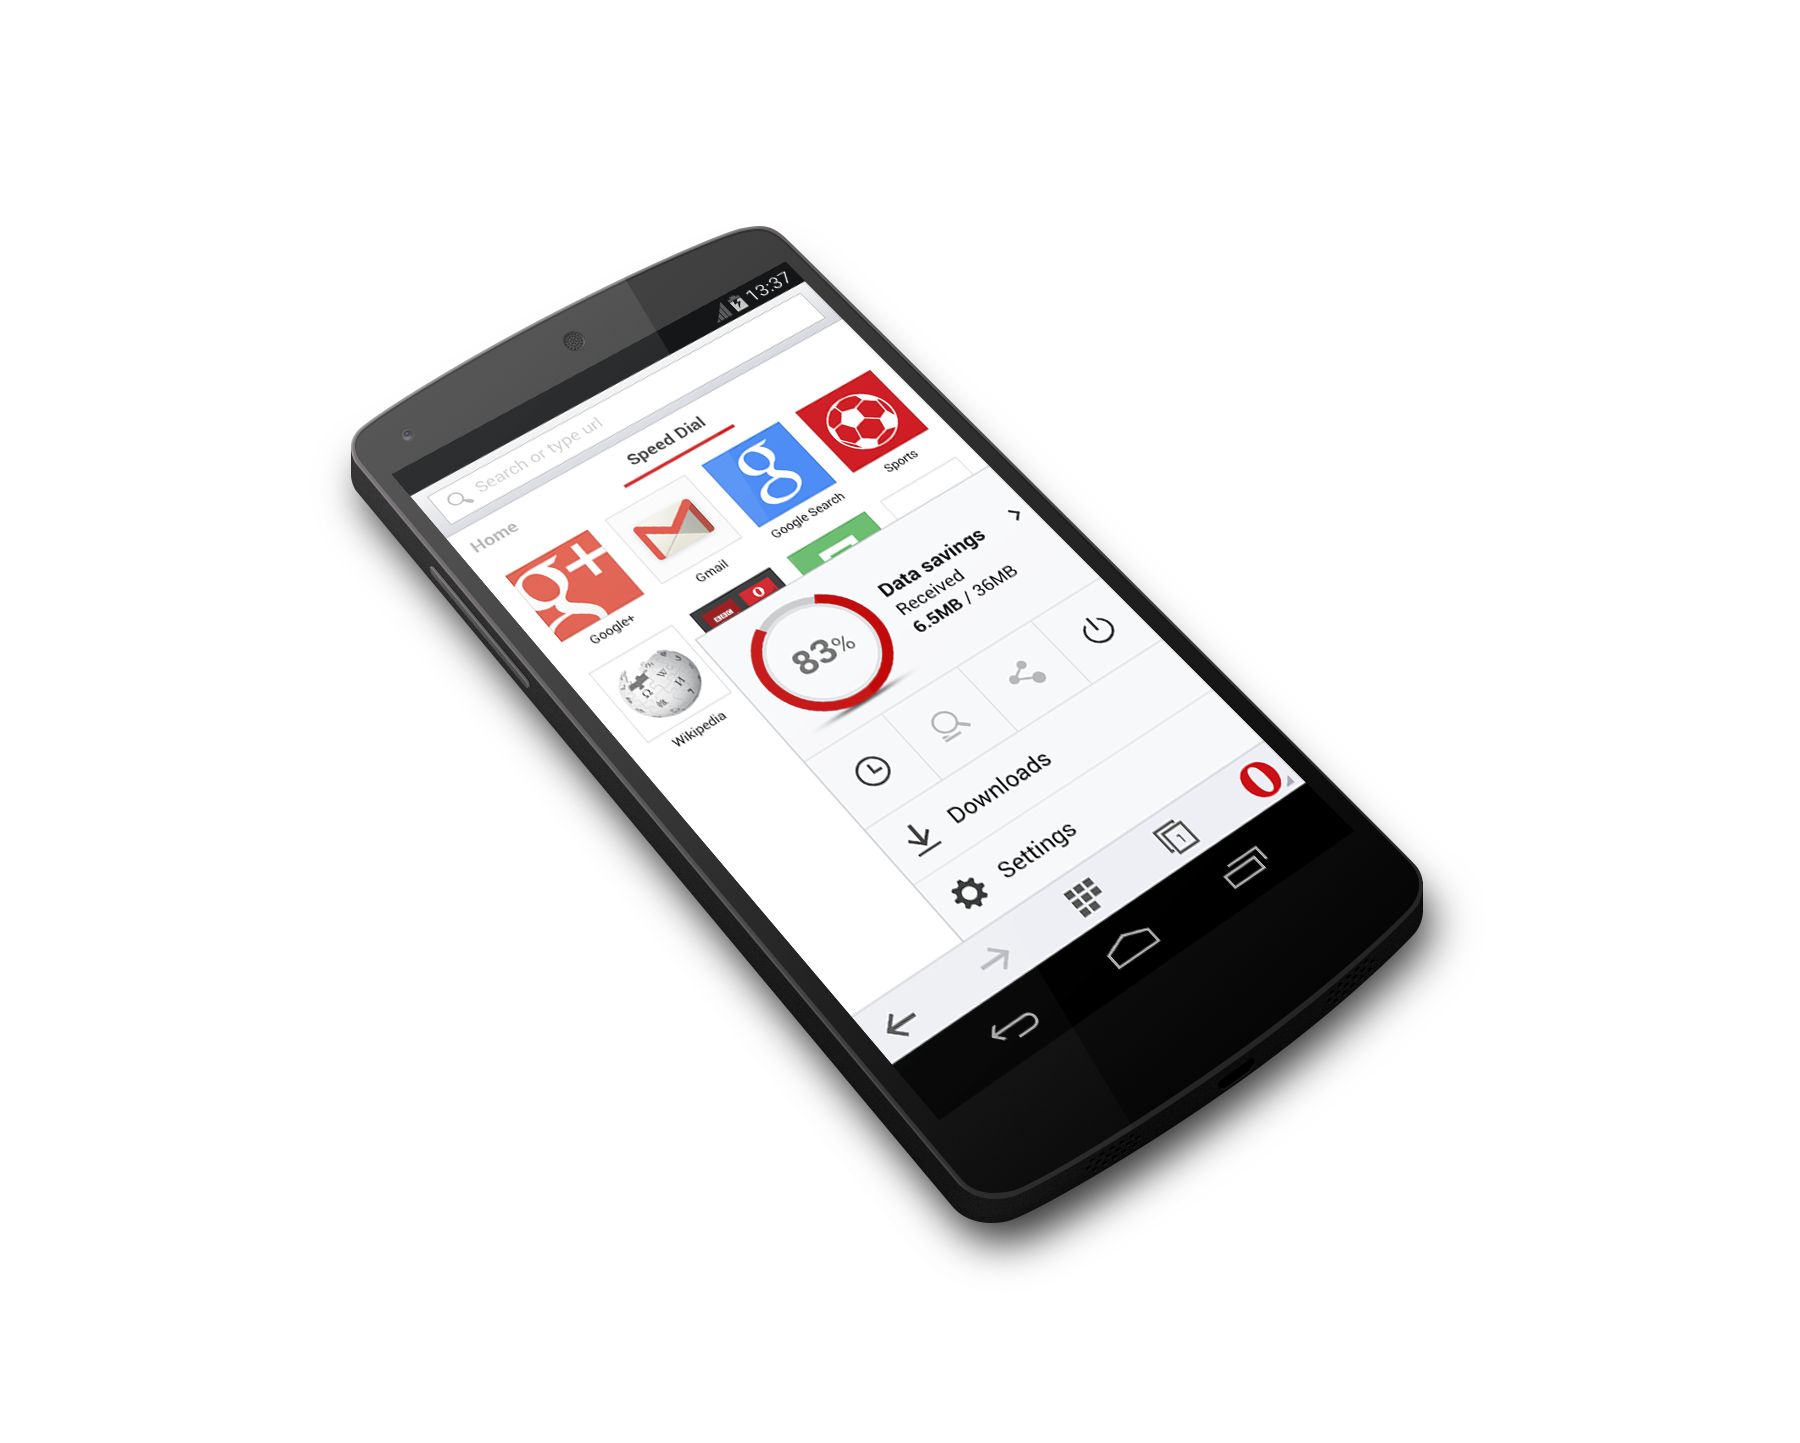 opera mini for android beta runs on android 2 3 and higher